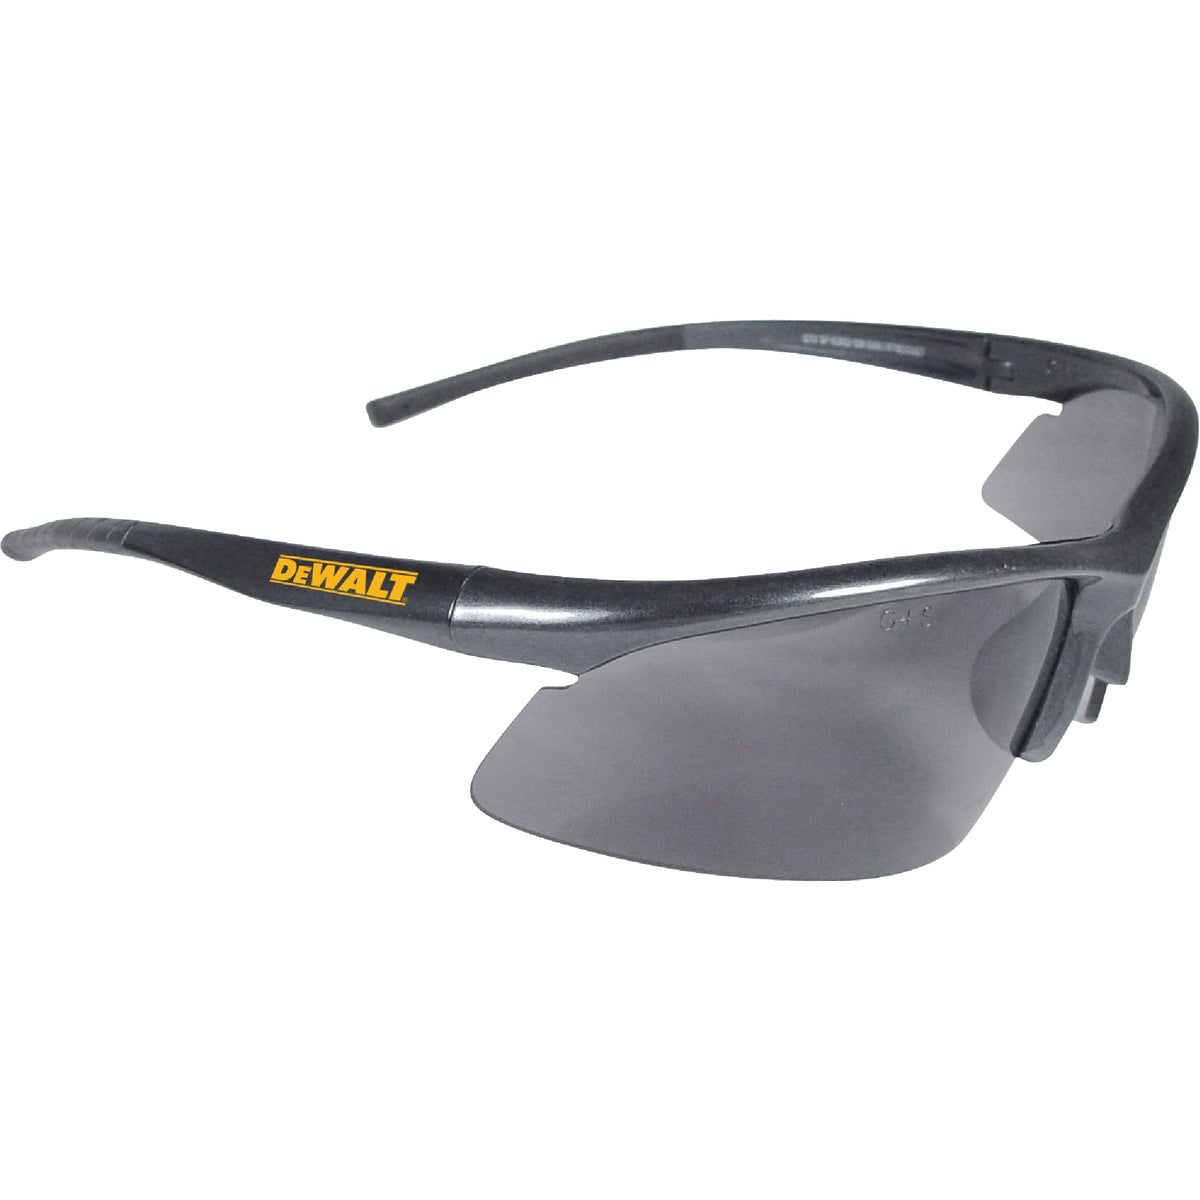 SMOKE SAFETY GLASSES - DPG51-2C by Radians